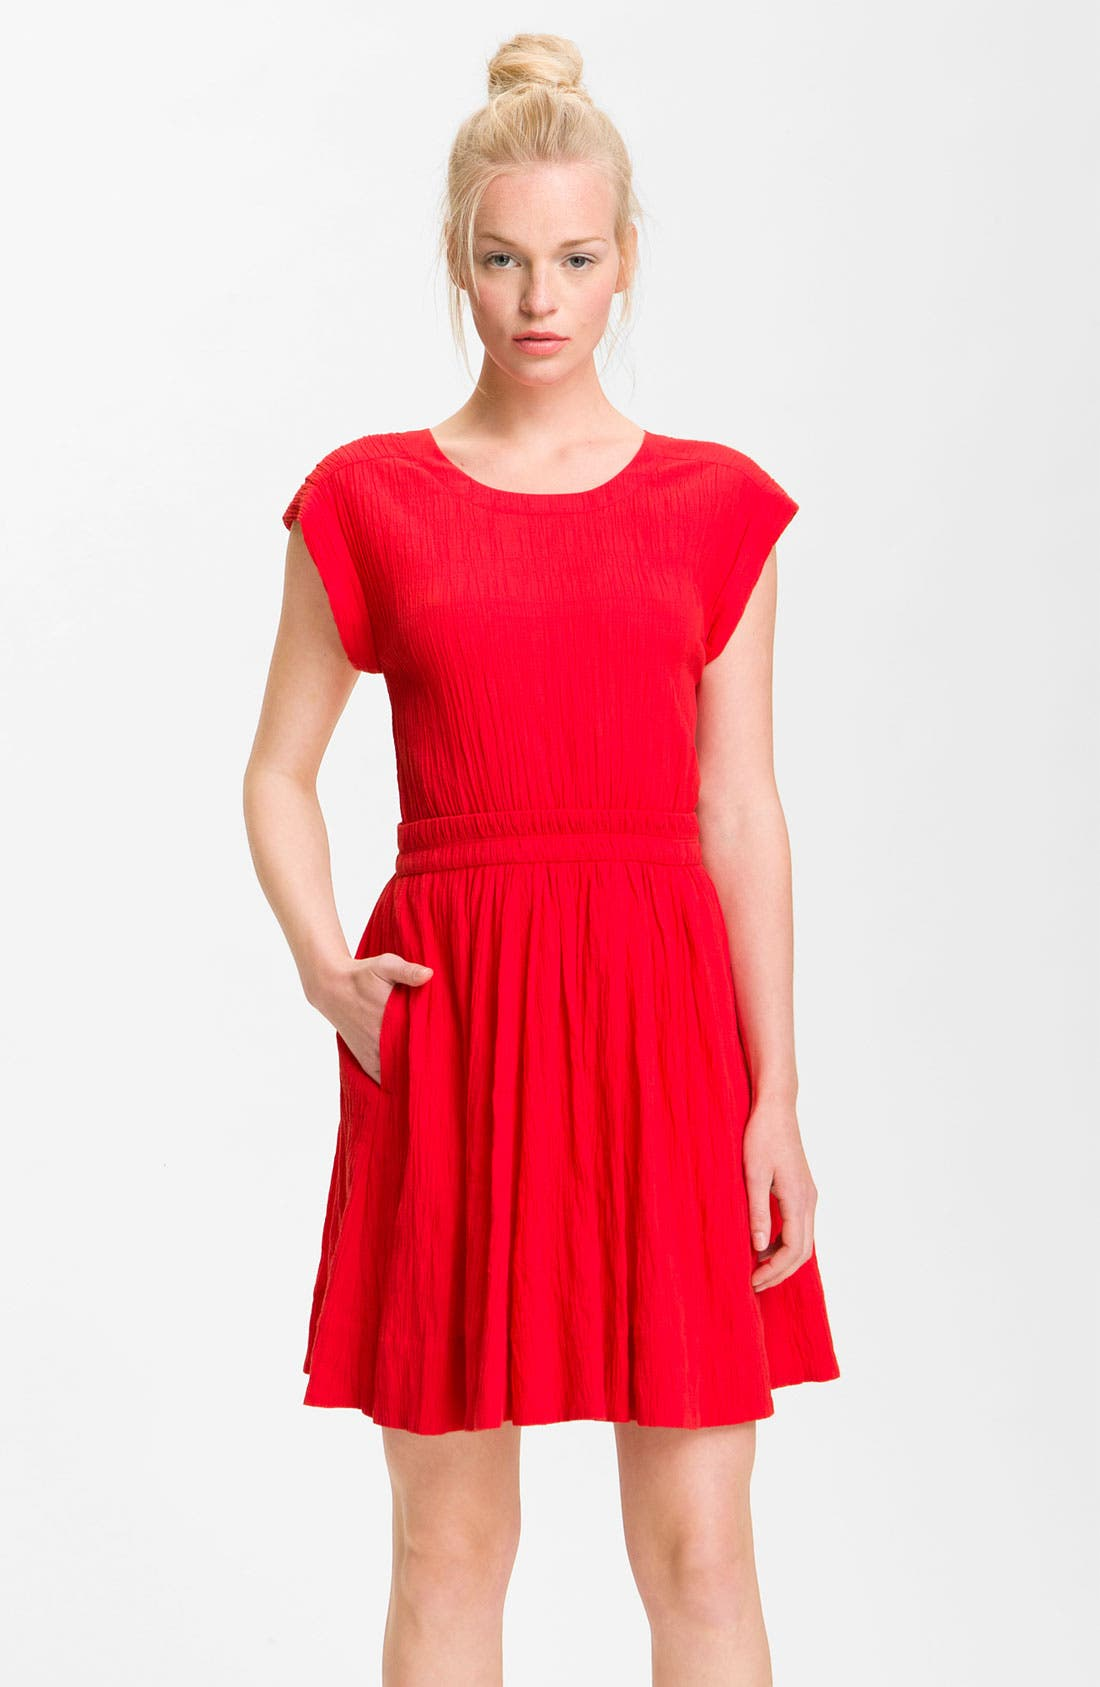 Main Image - MARC BY MARC JACOBS 'Aliyah' Crinkle Cotton Dress